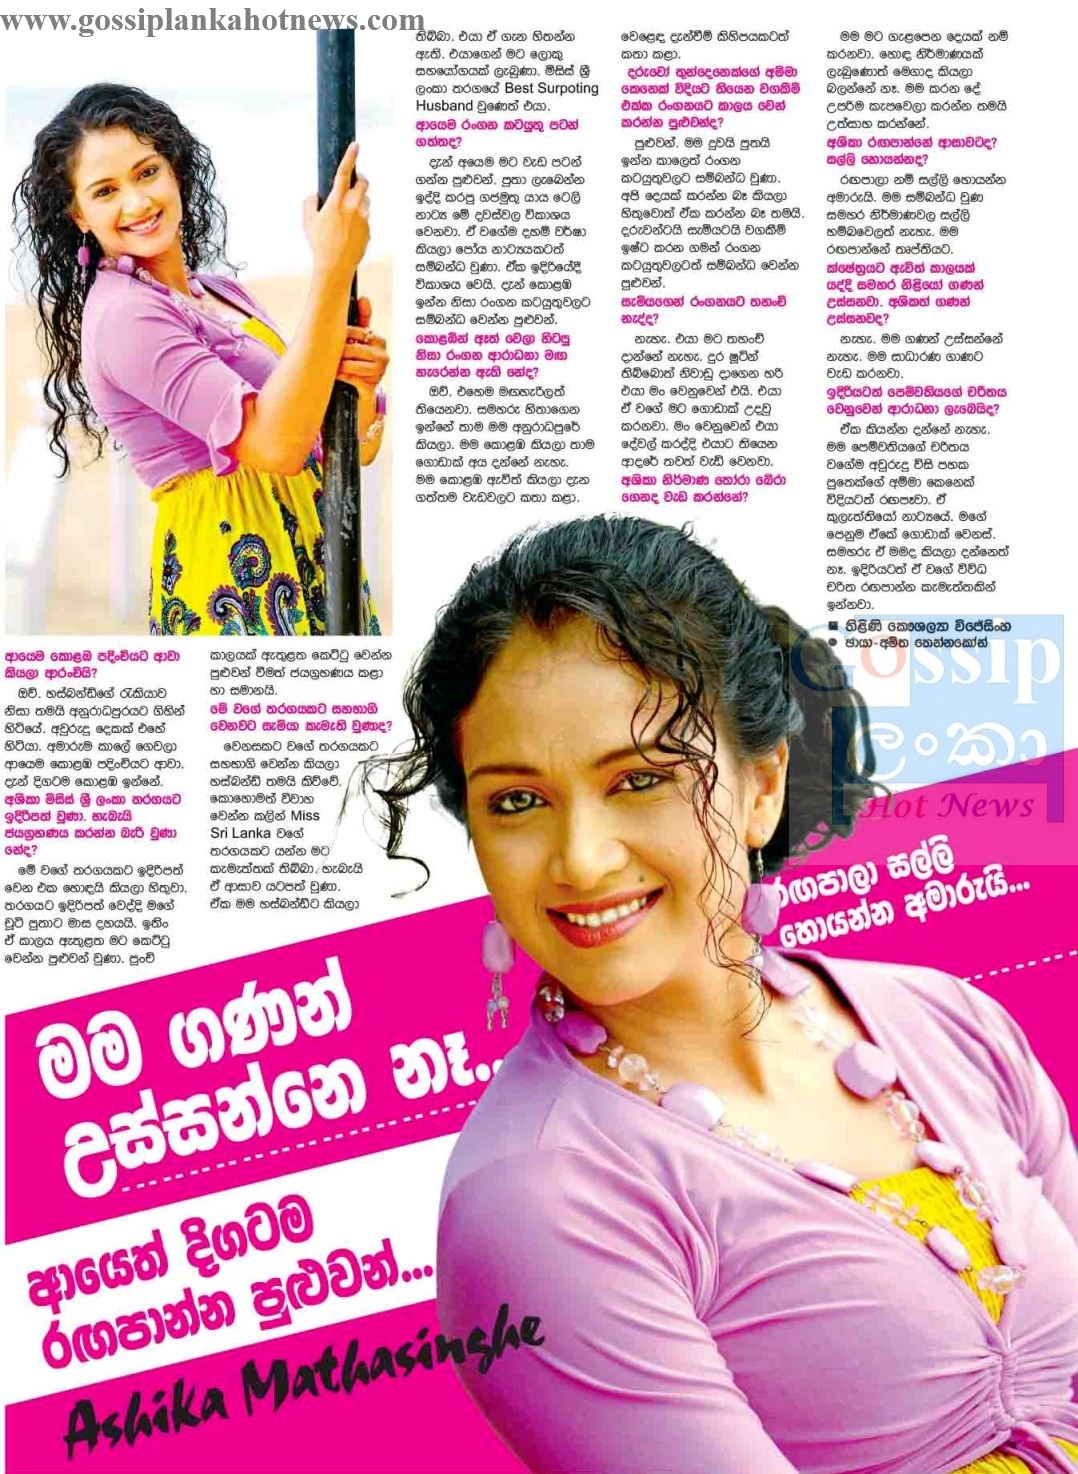 Popular actress Ashika Mathasinghe speaks